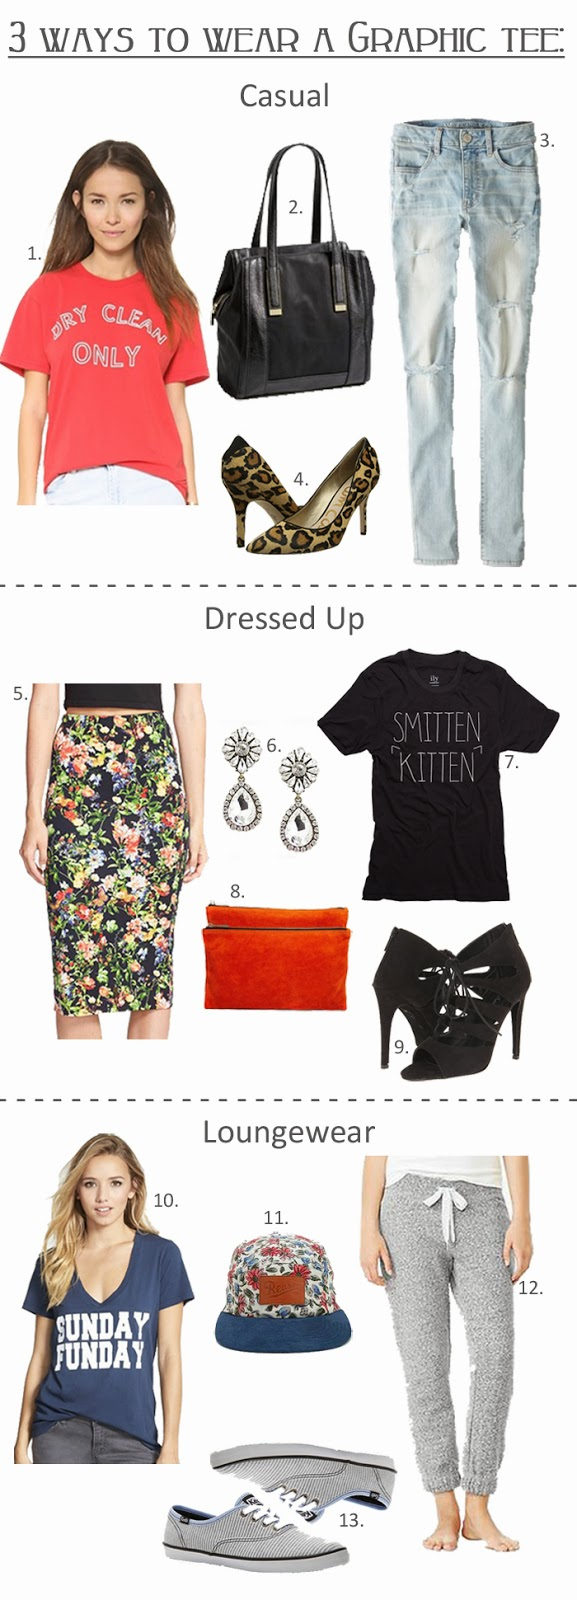 How To Wear A Graphic Tee